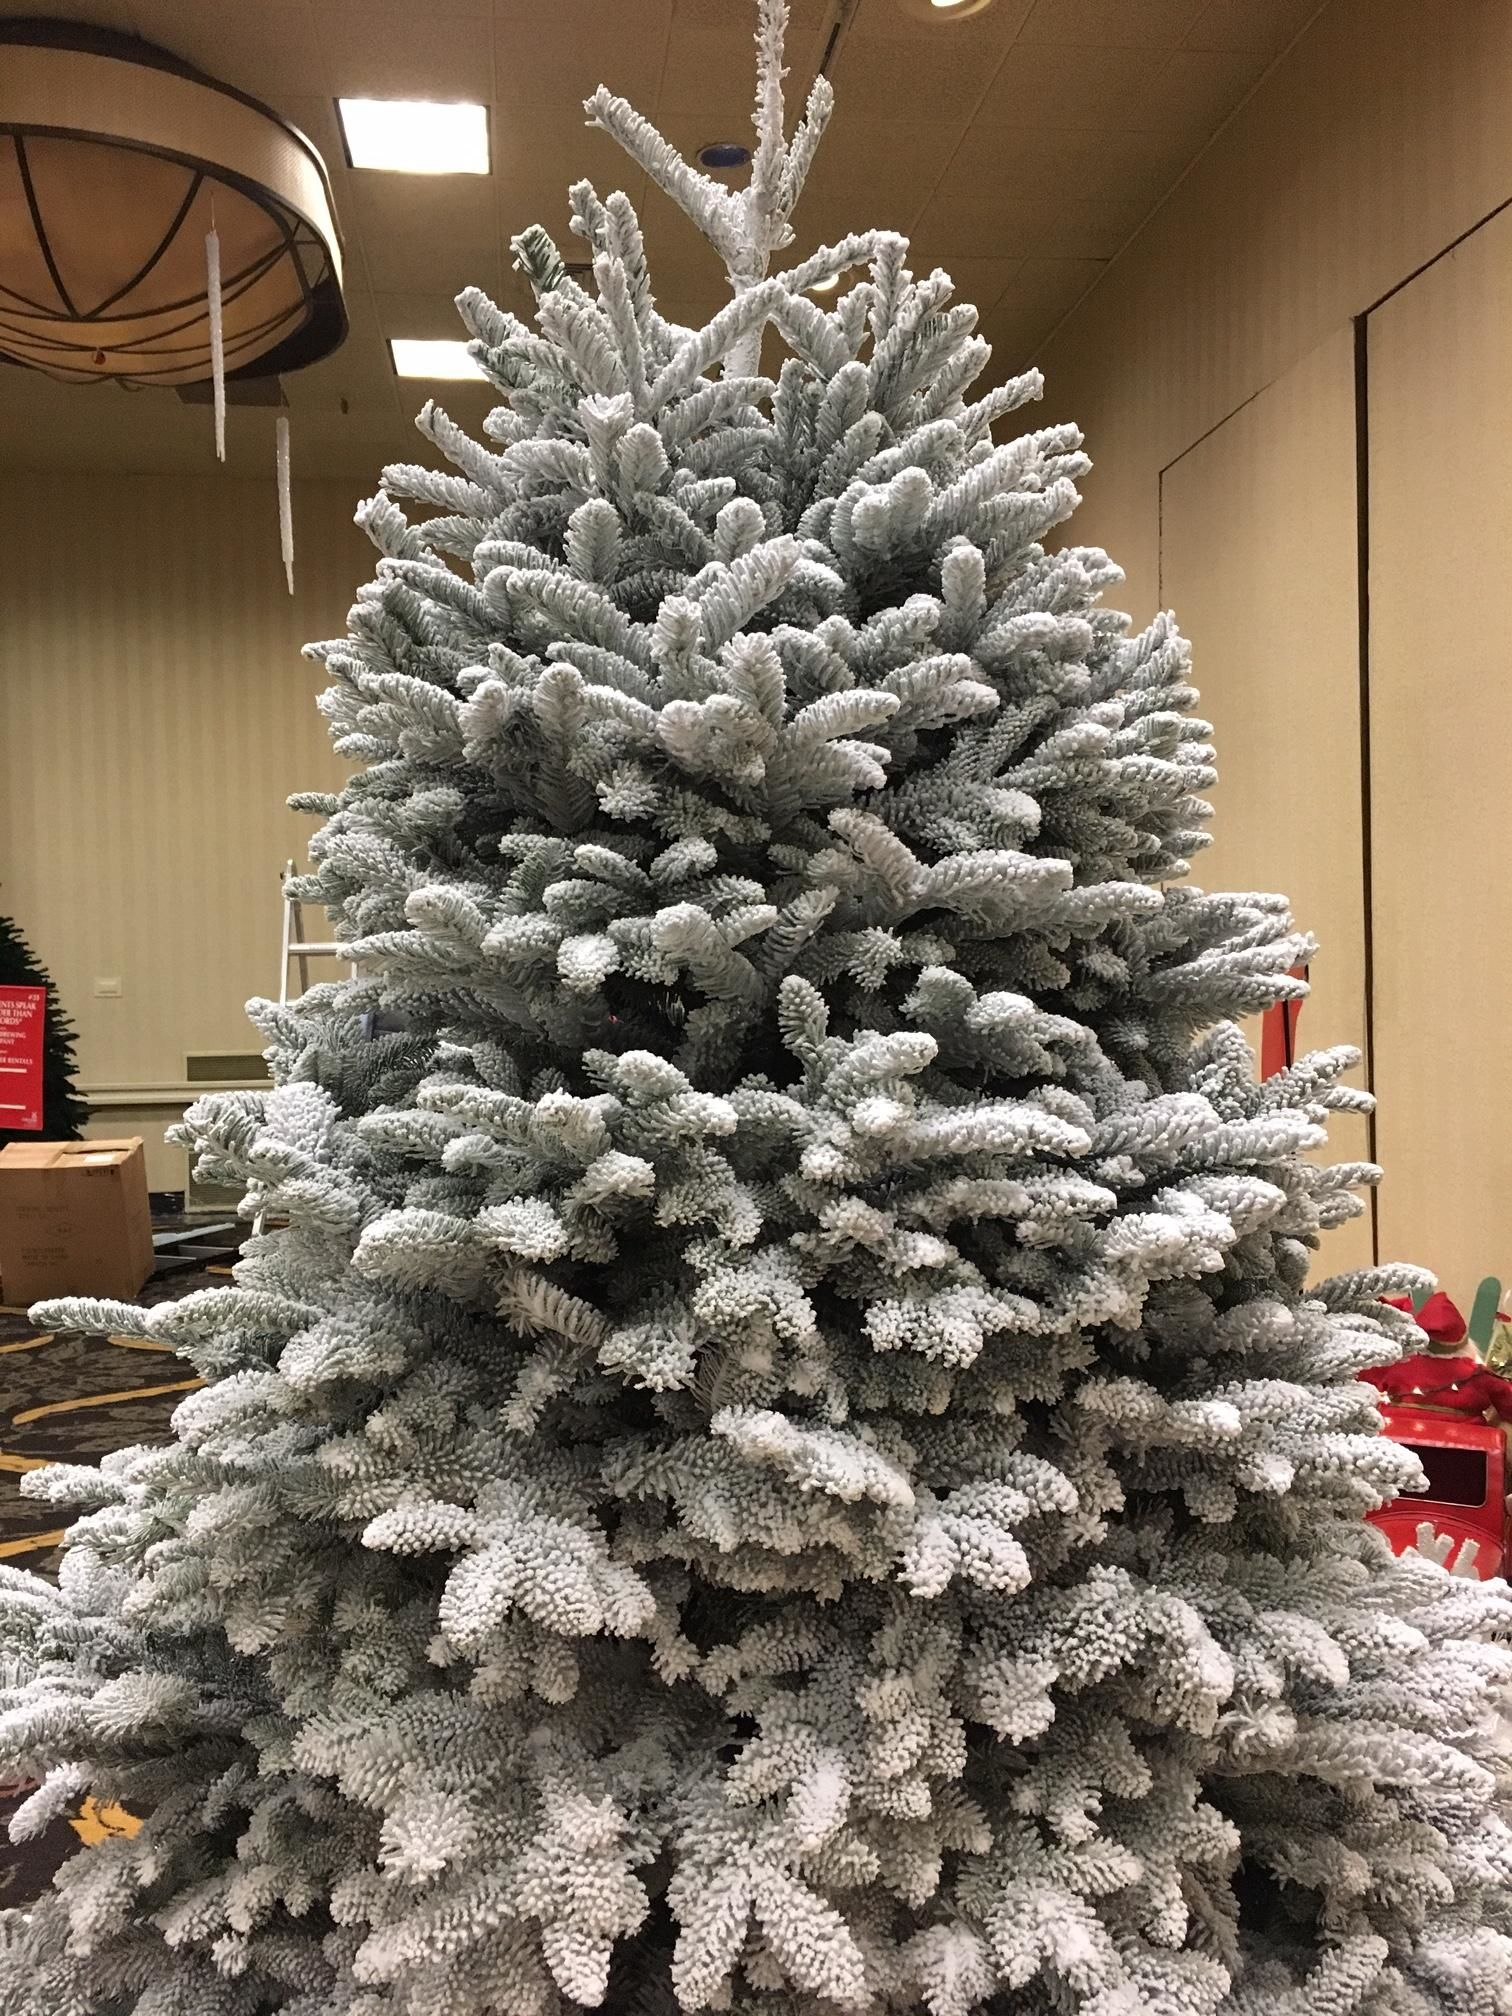 The Festival of Trees gets set to celebrate 27 years of Christmas in Lane County (SBG)